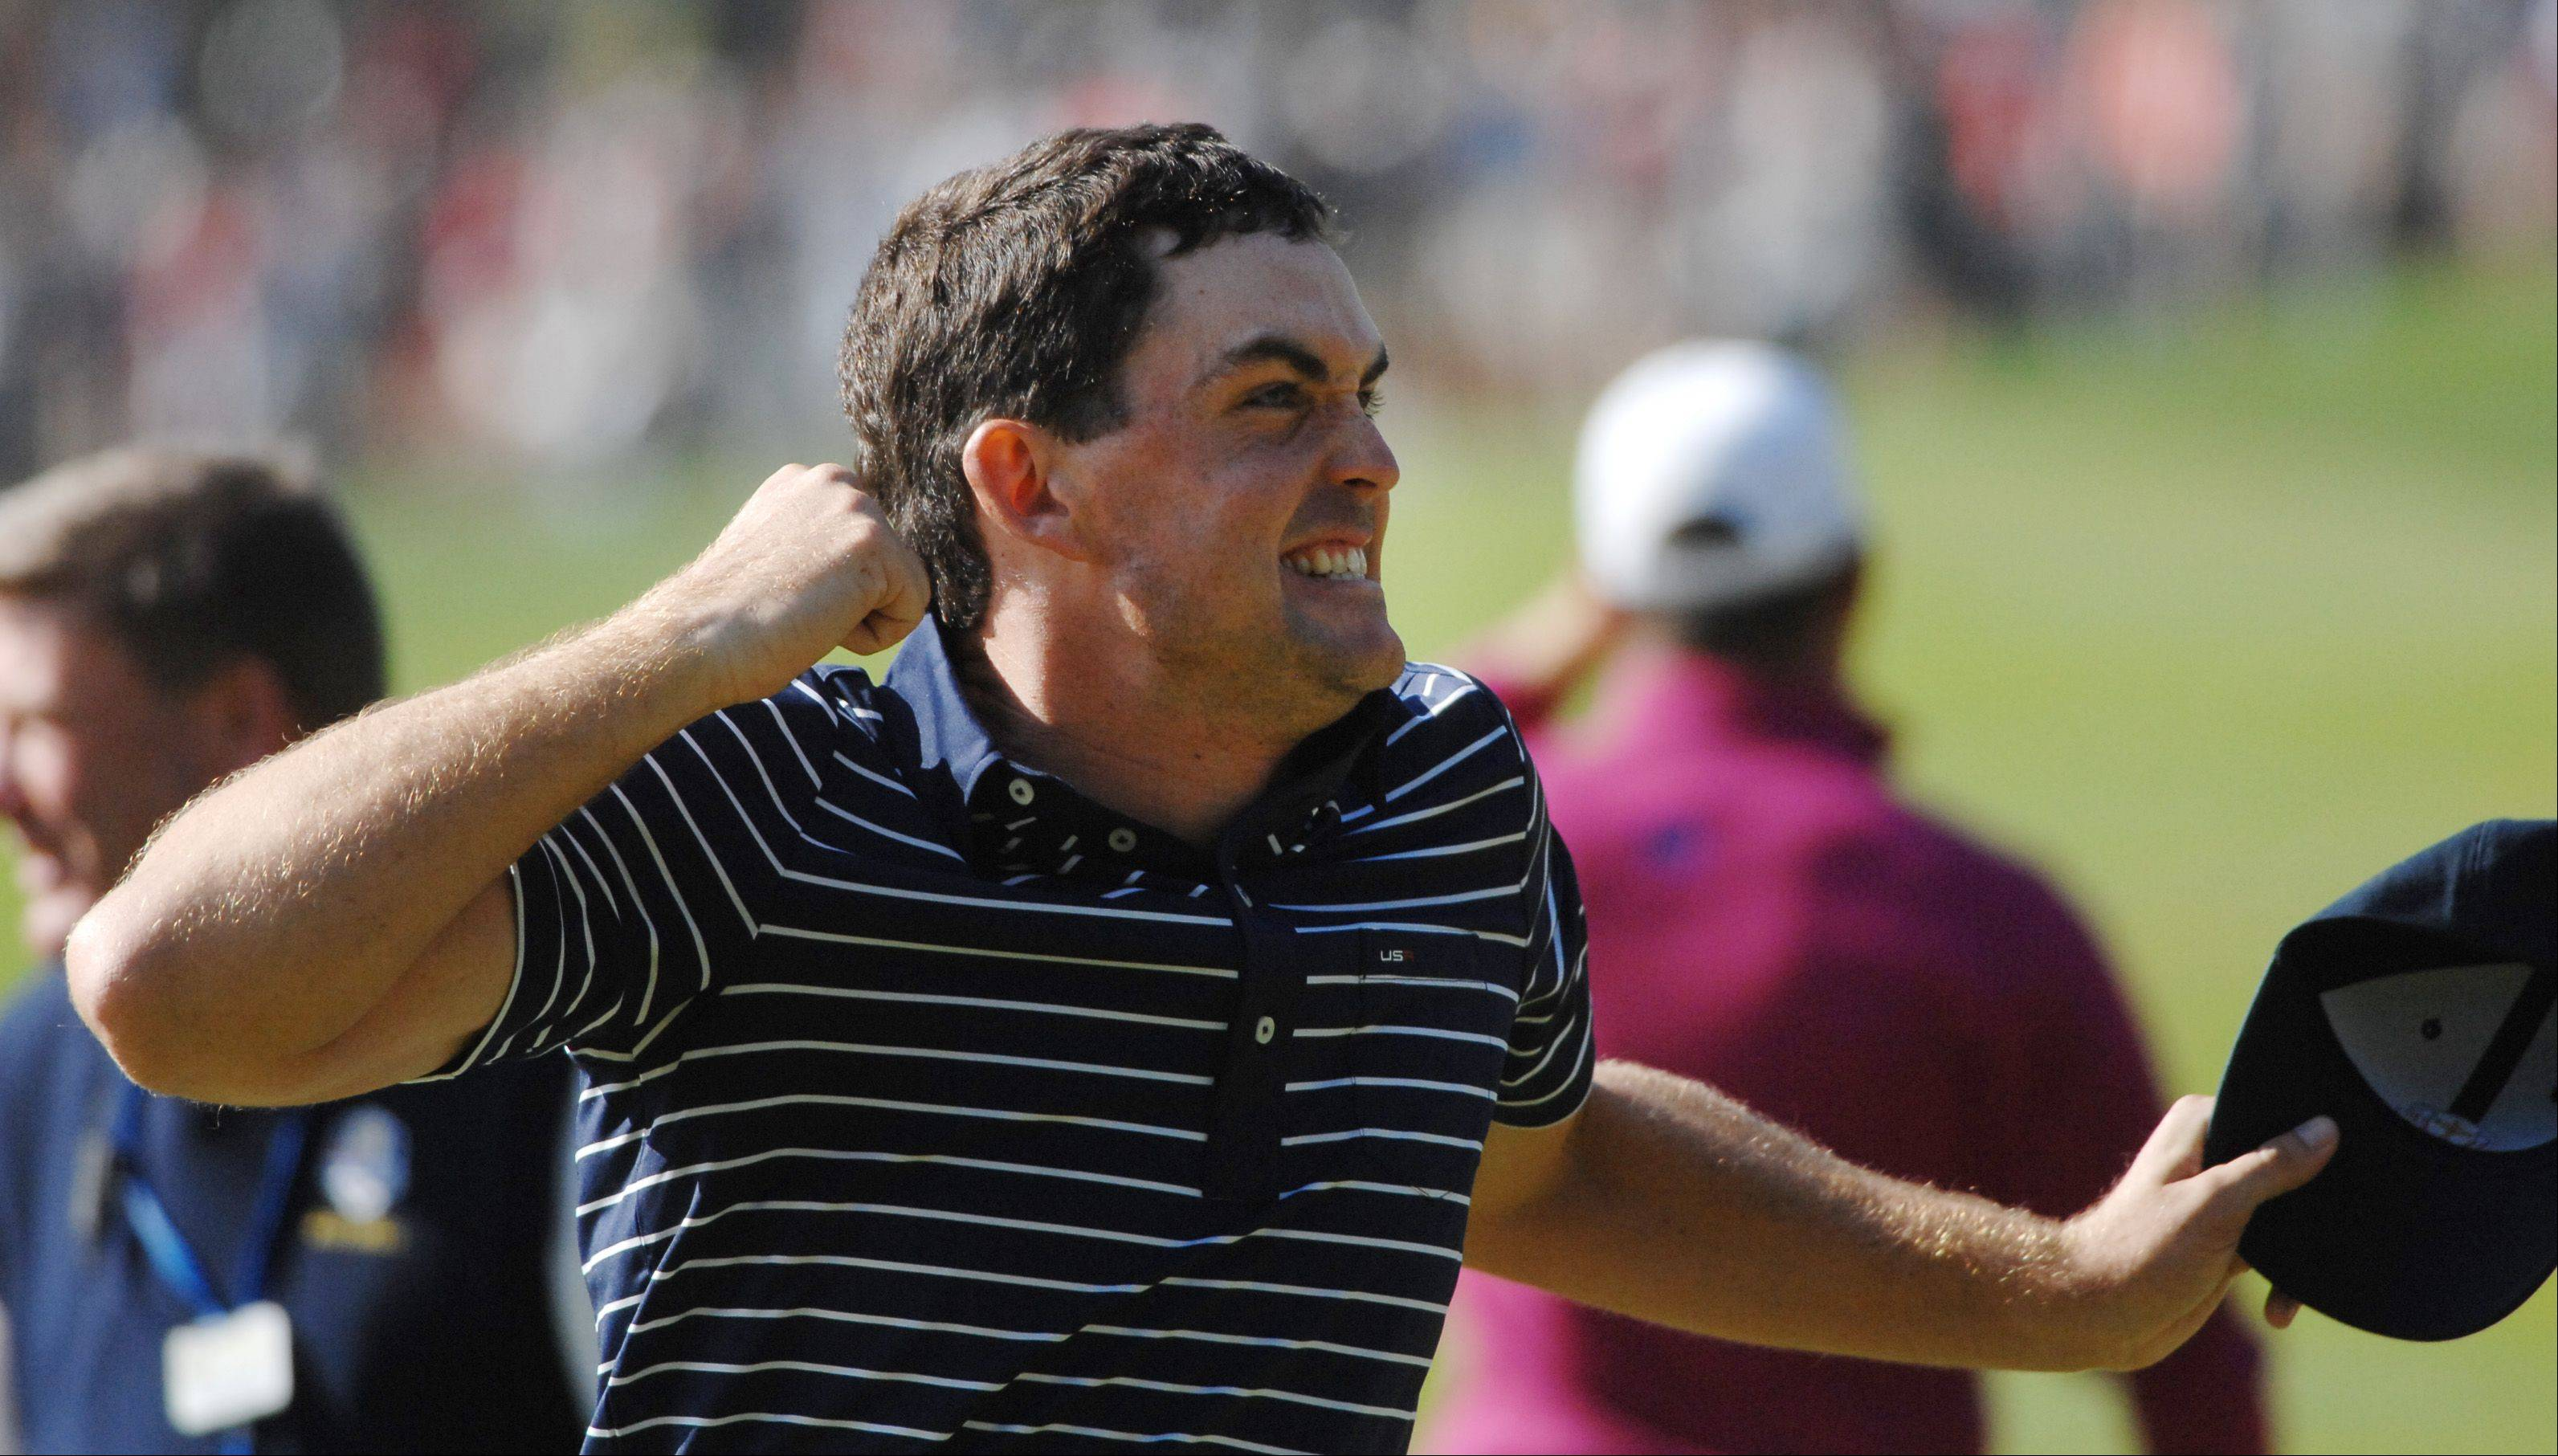 Keegan Bradley reacts to his team's win on the 12th hole of foursome play Saturday during the Ryder Cup matches.